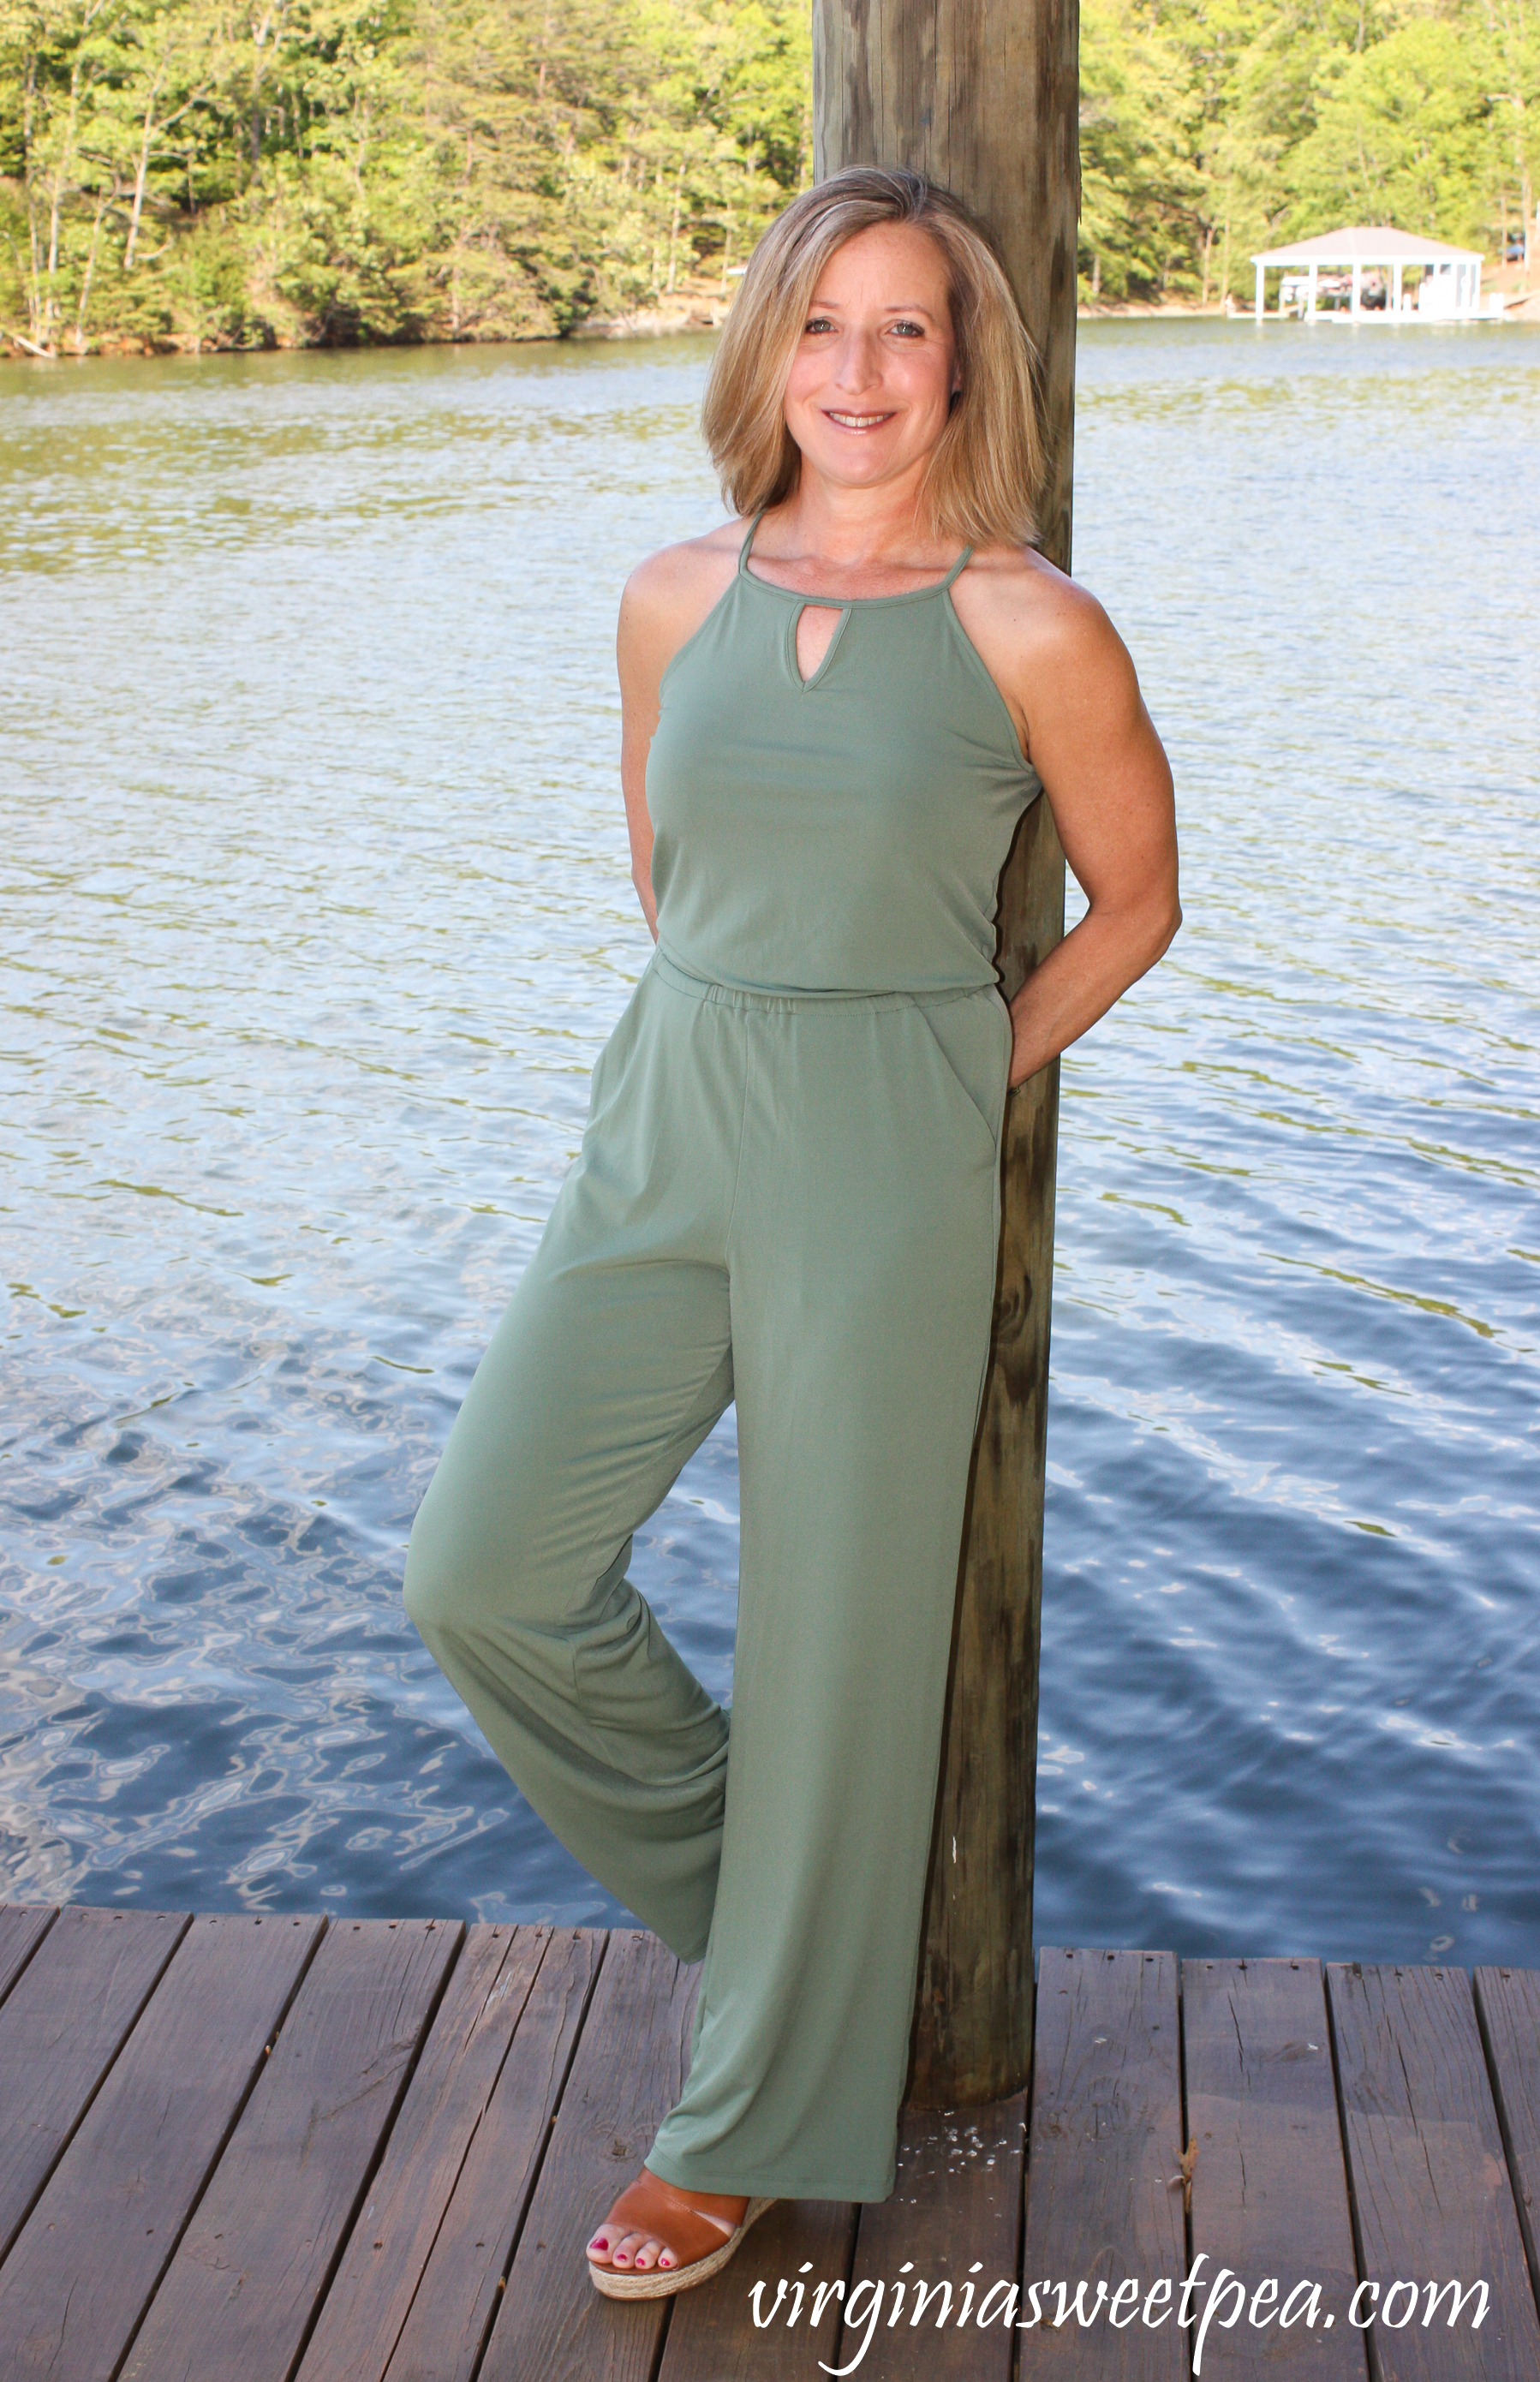 Stitch Fix Review for May 2019 - Goldray Lowrey Knit Jumpsuit #stitchfix #stitchfixreview #stitchfixsummer